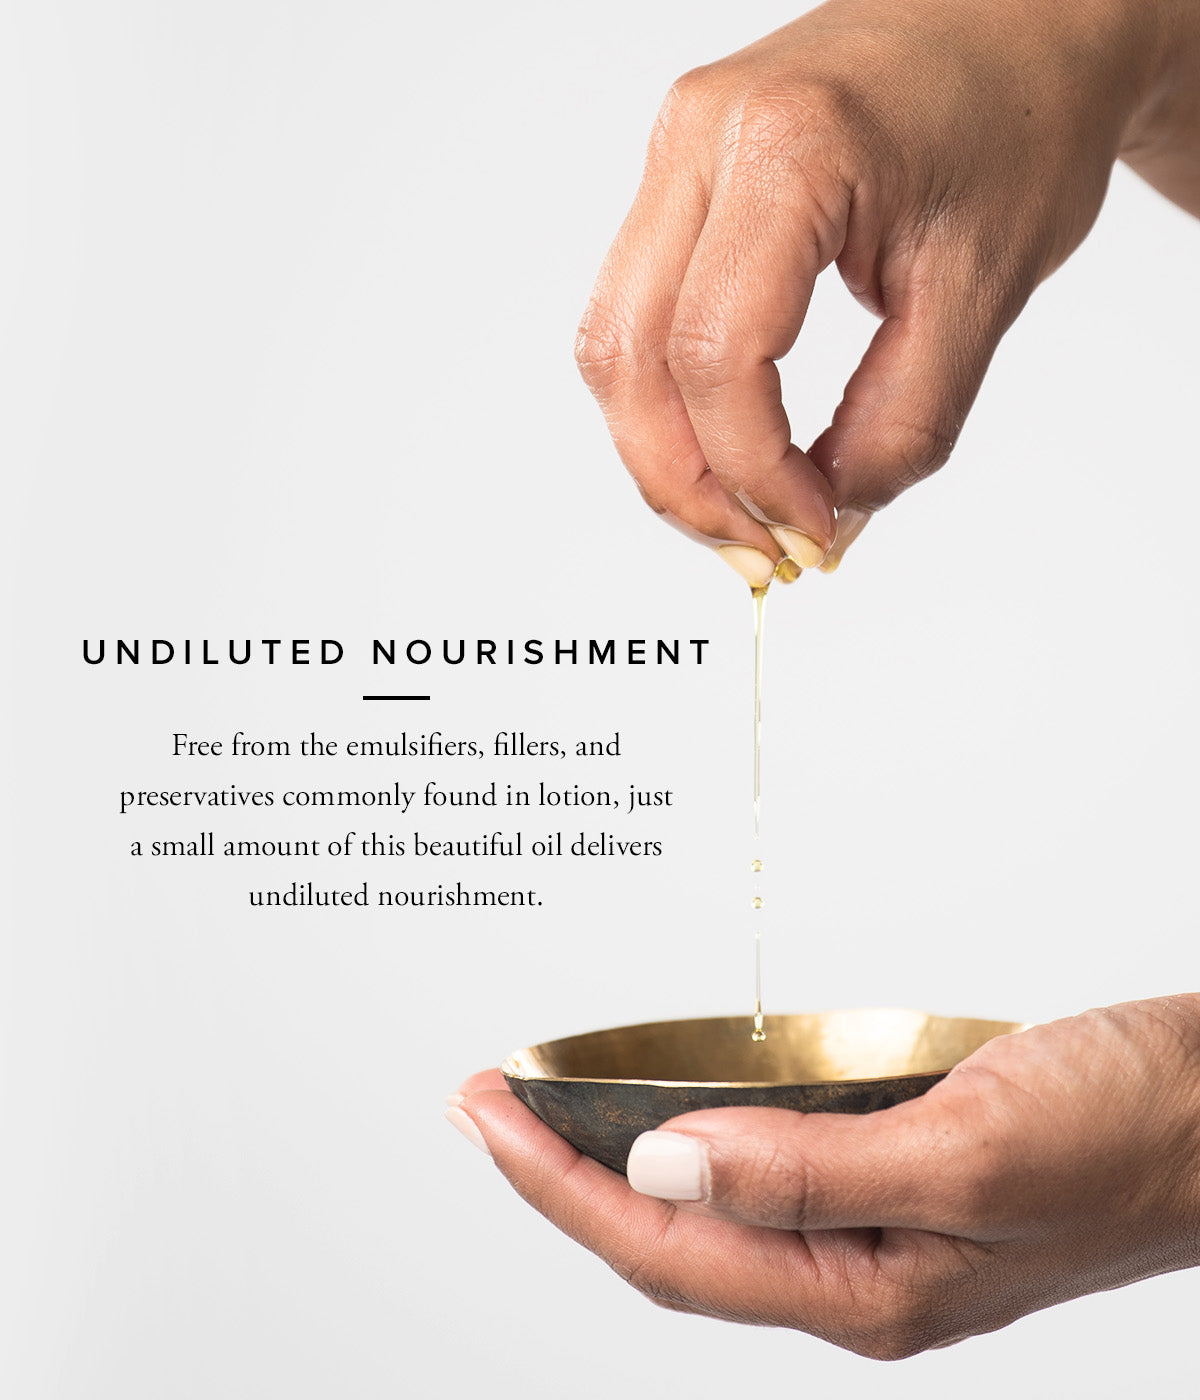 Undiluted Nourishment - Free from the emulsifiers, fillers, and preservatives commonly found in lotion, just a small amount of this beautiful oil delivers undiluted nourishment